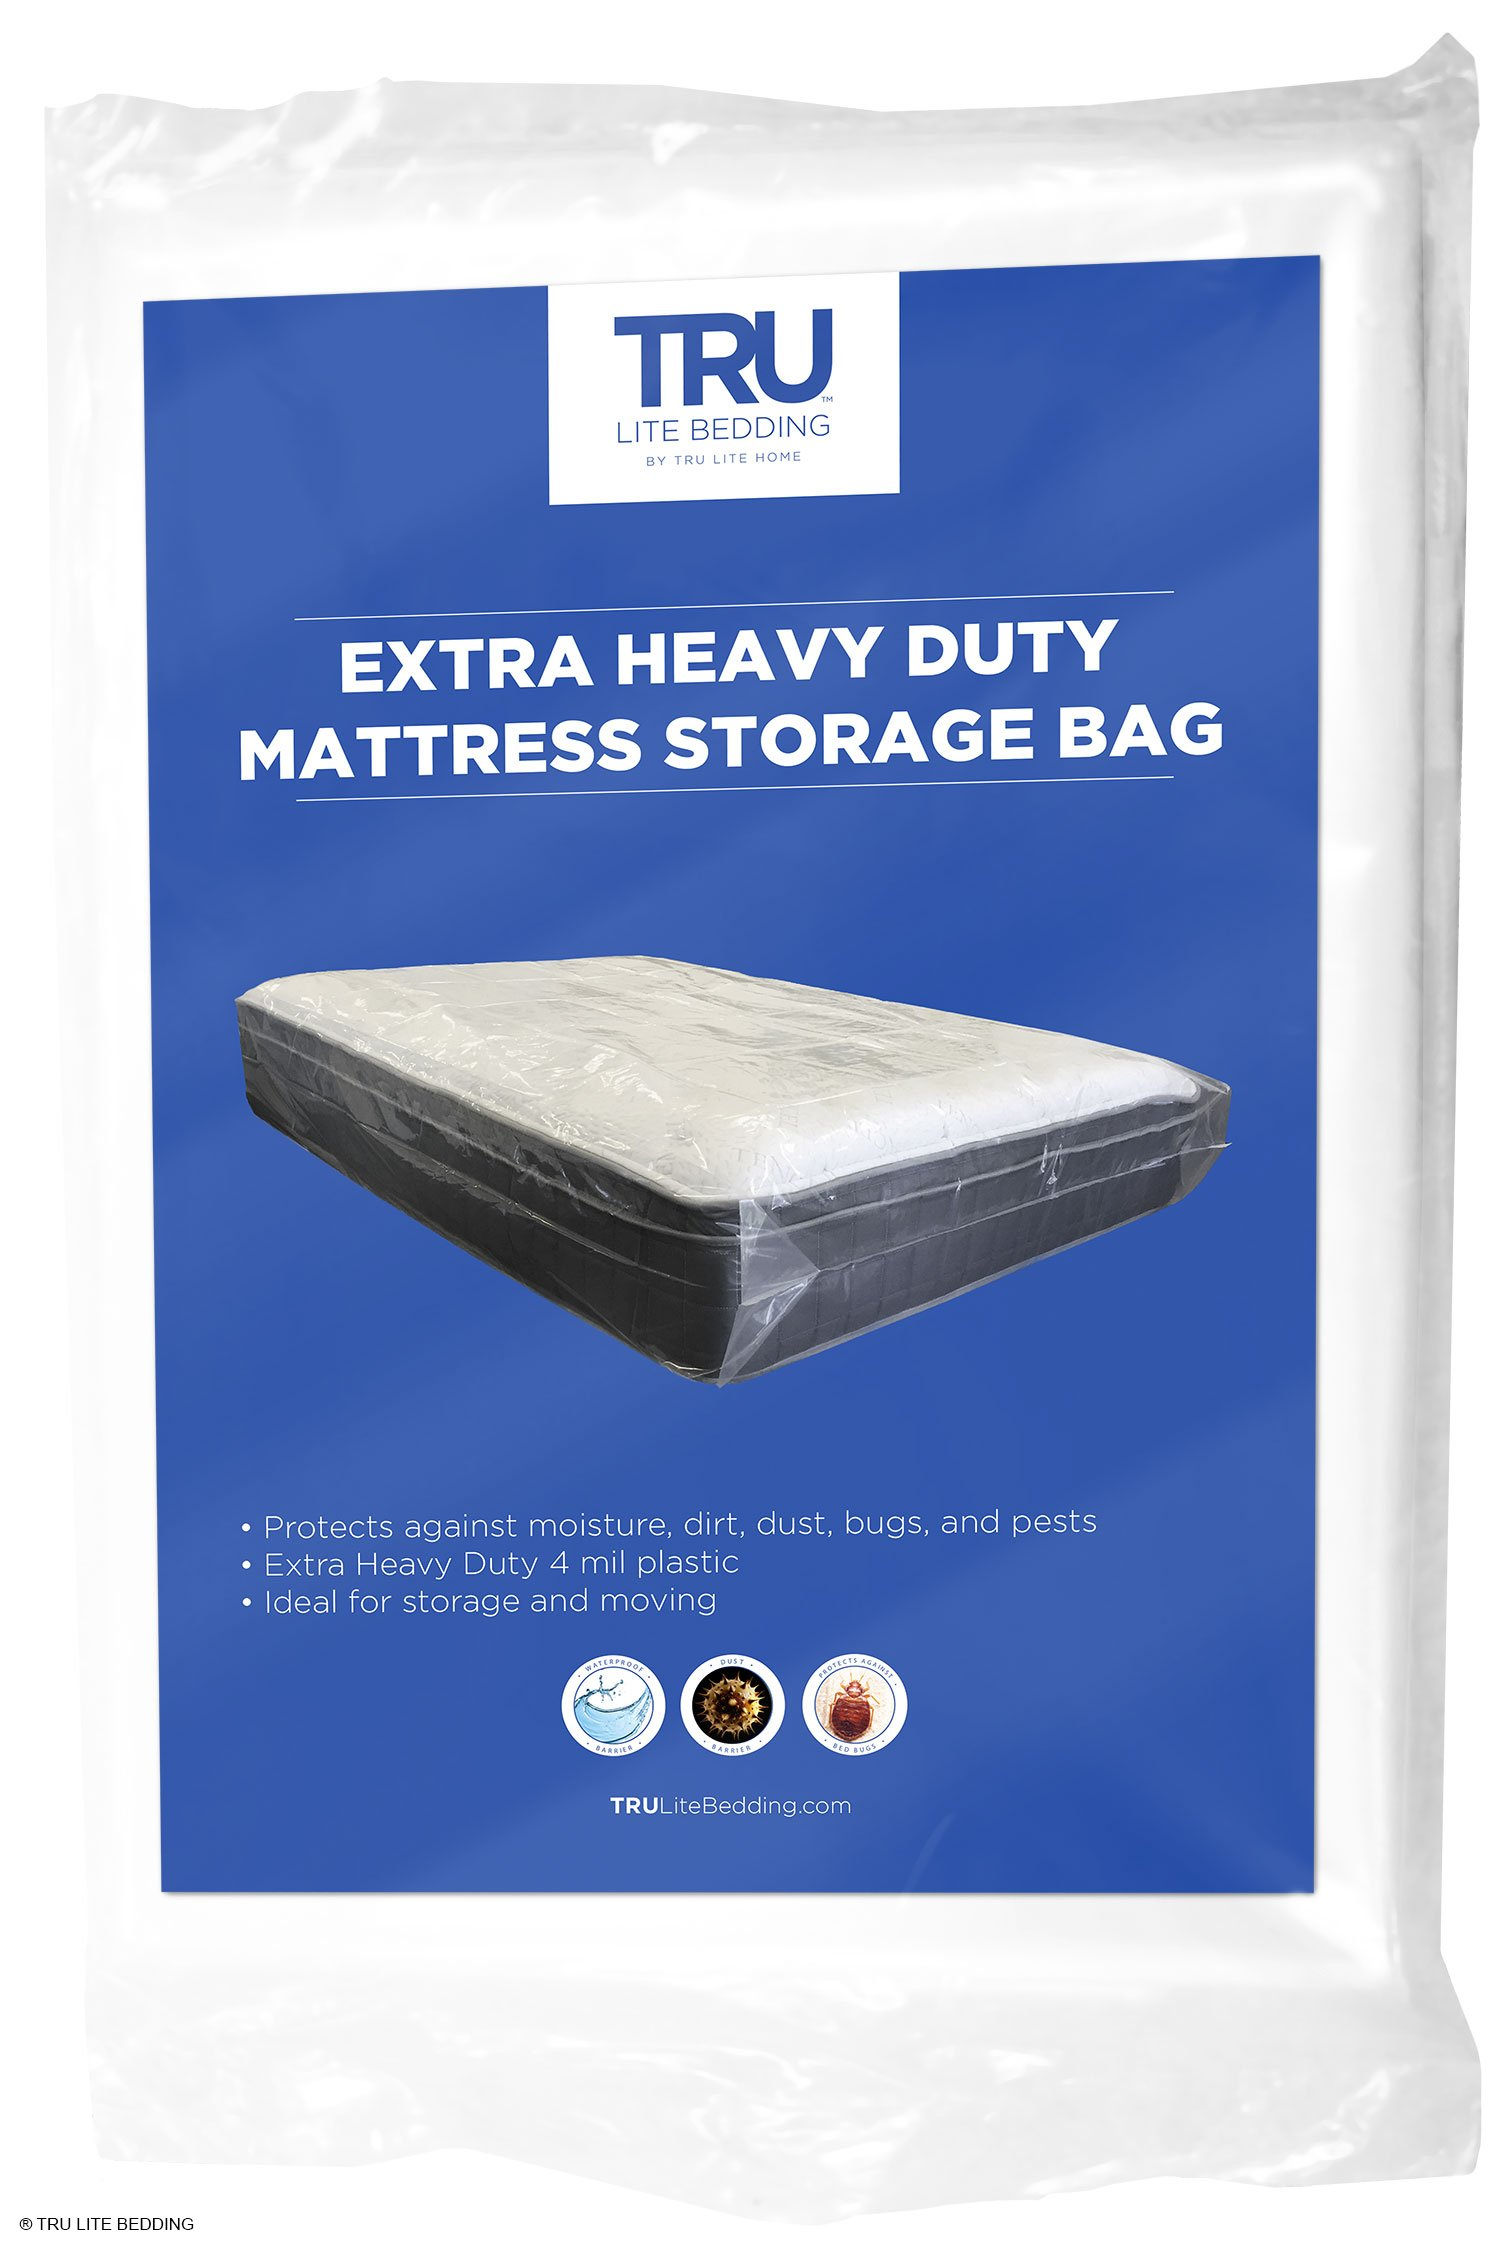 TRU Lite Mattress Storage Bag - Mattress Bag for Moving - Heavy Duty Extra Thick 4 Mil Plastic - Fits Standard, Extra Long, Pillow Top Sizes - Twin Size